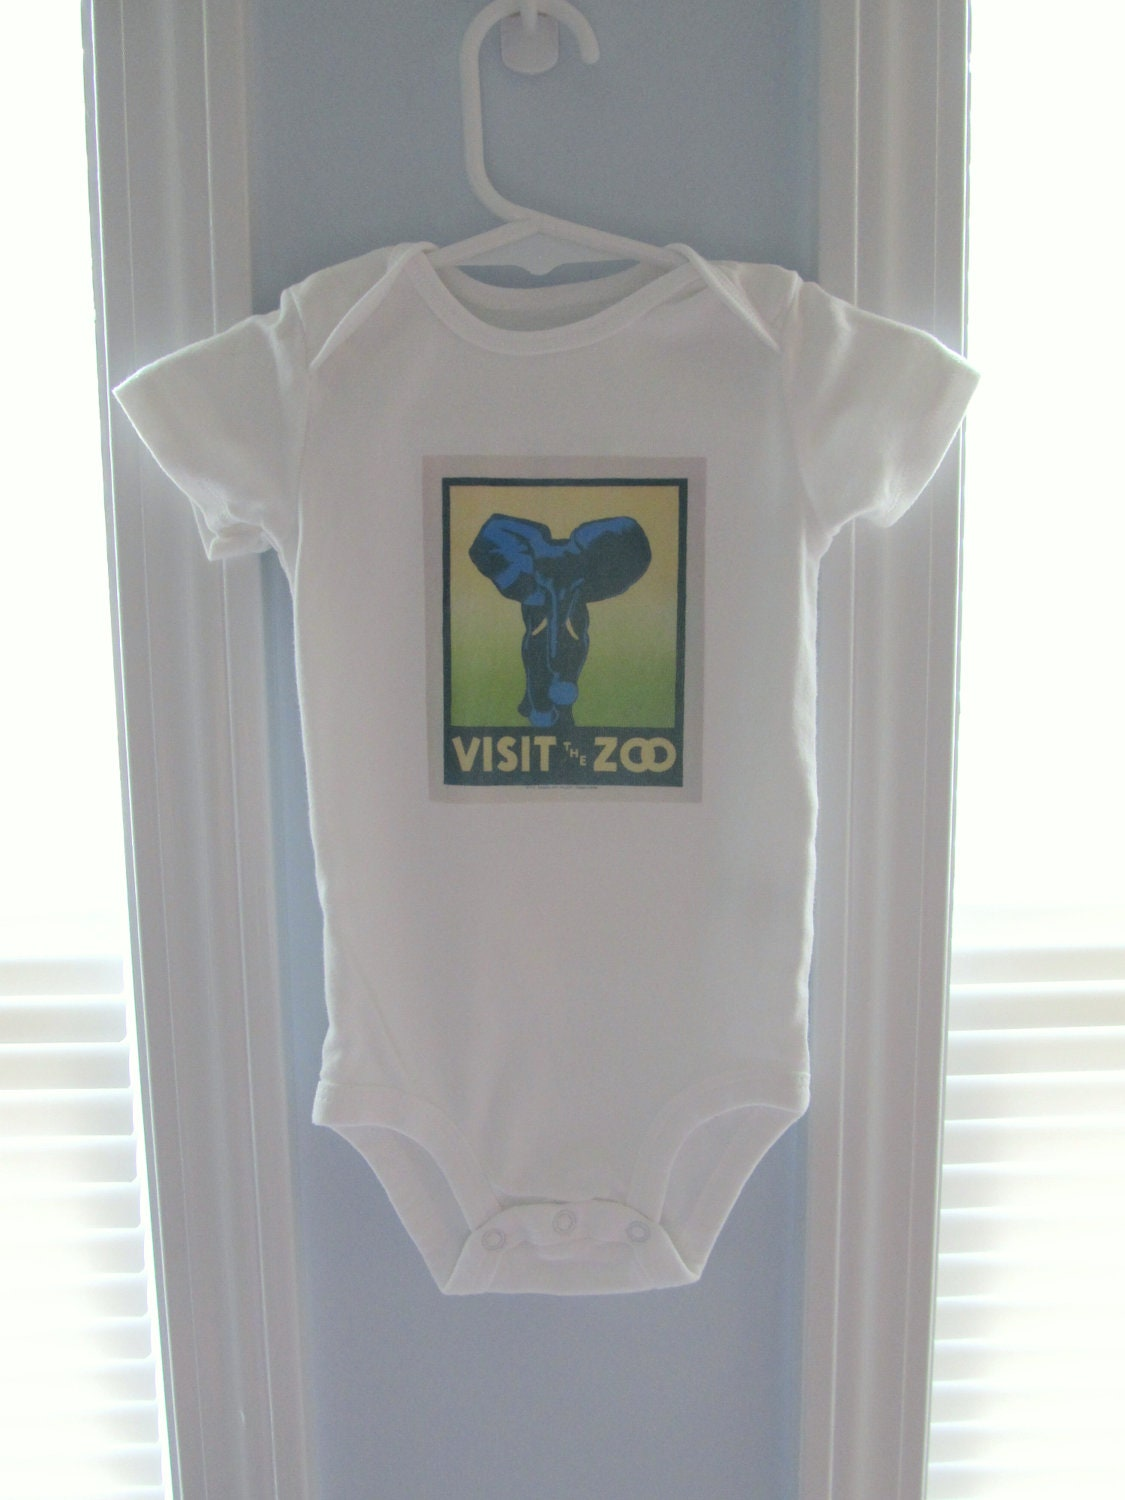 Vintage Onesie - Visit the Zoo image